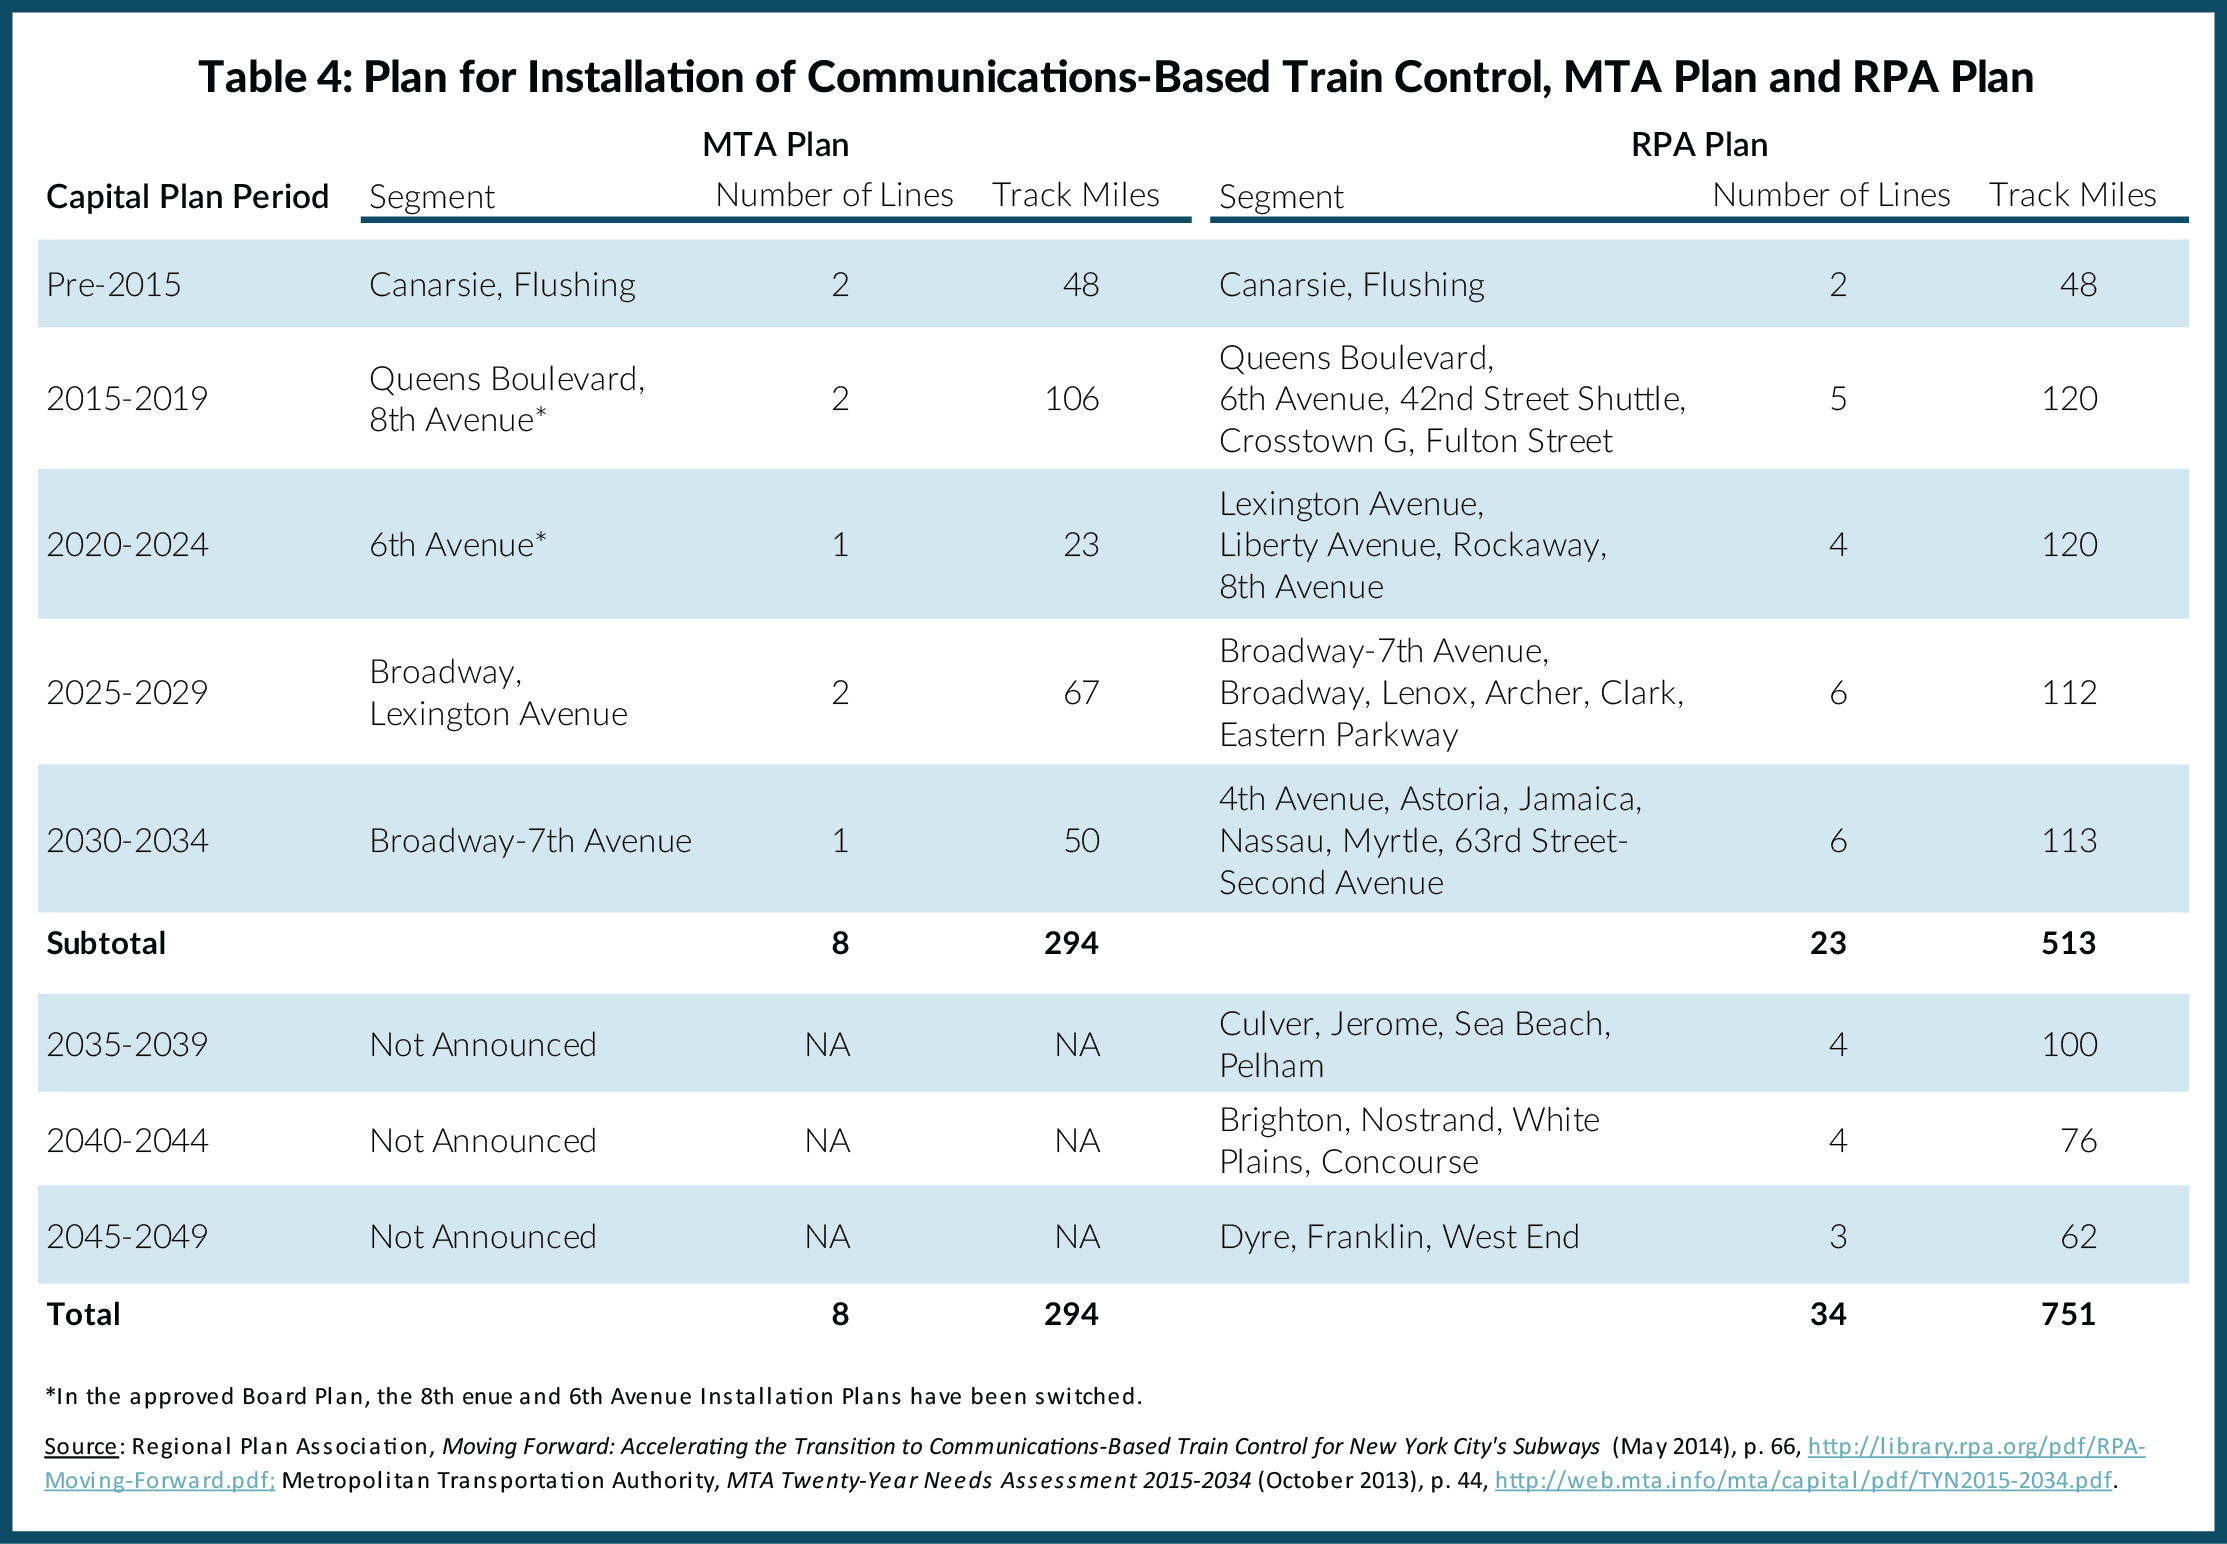 Table 4: Plan for Installation of Communications Based Train Control, MTA Plan and RPA Plan